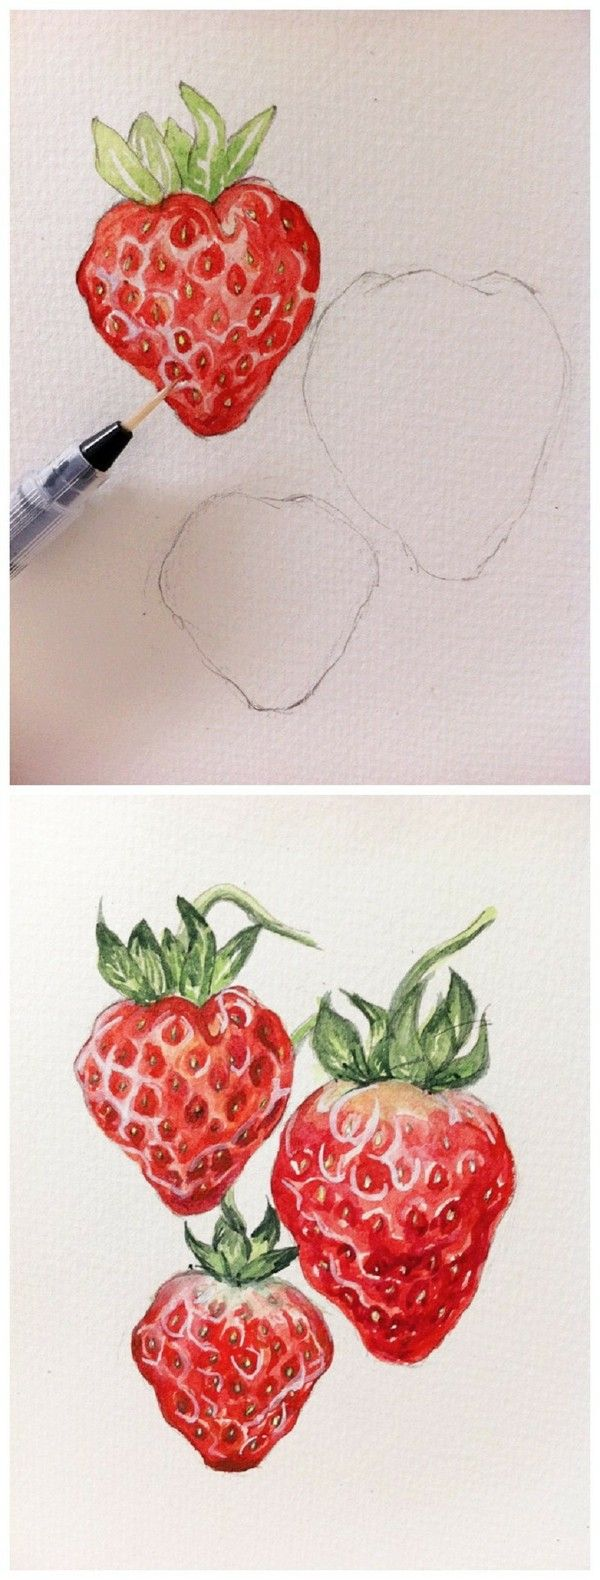 Colour pencil drawing tutorial #Fruit illustrations# strawberry (fruit water color)